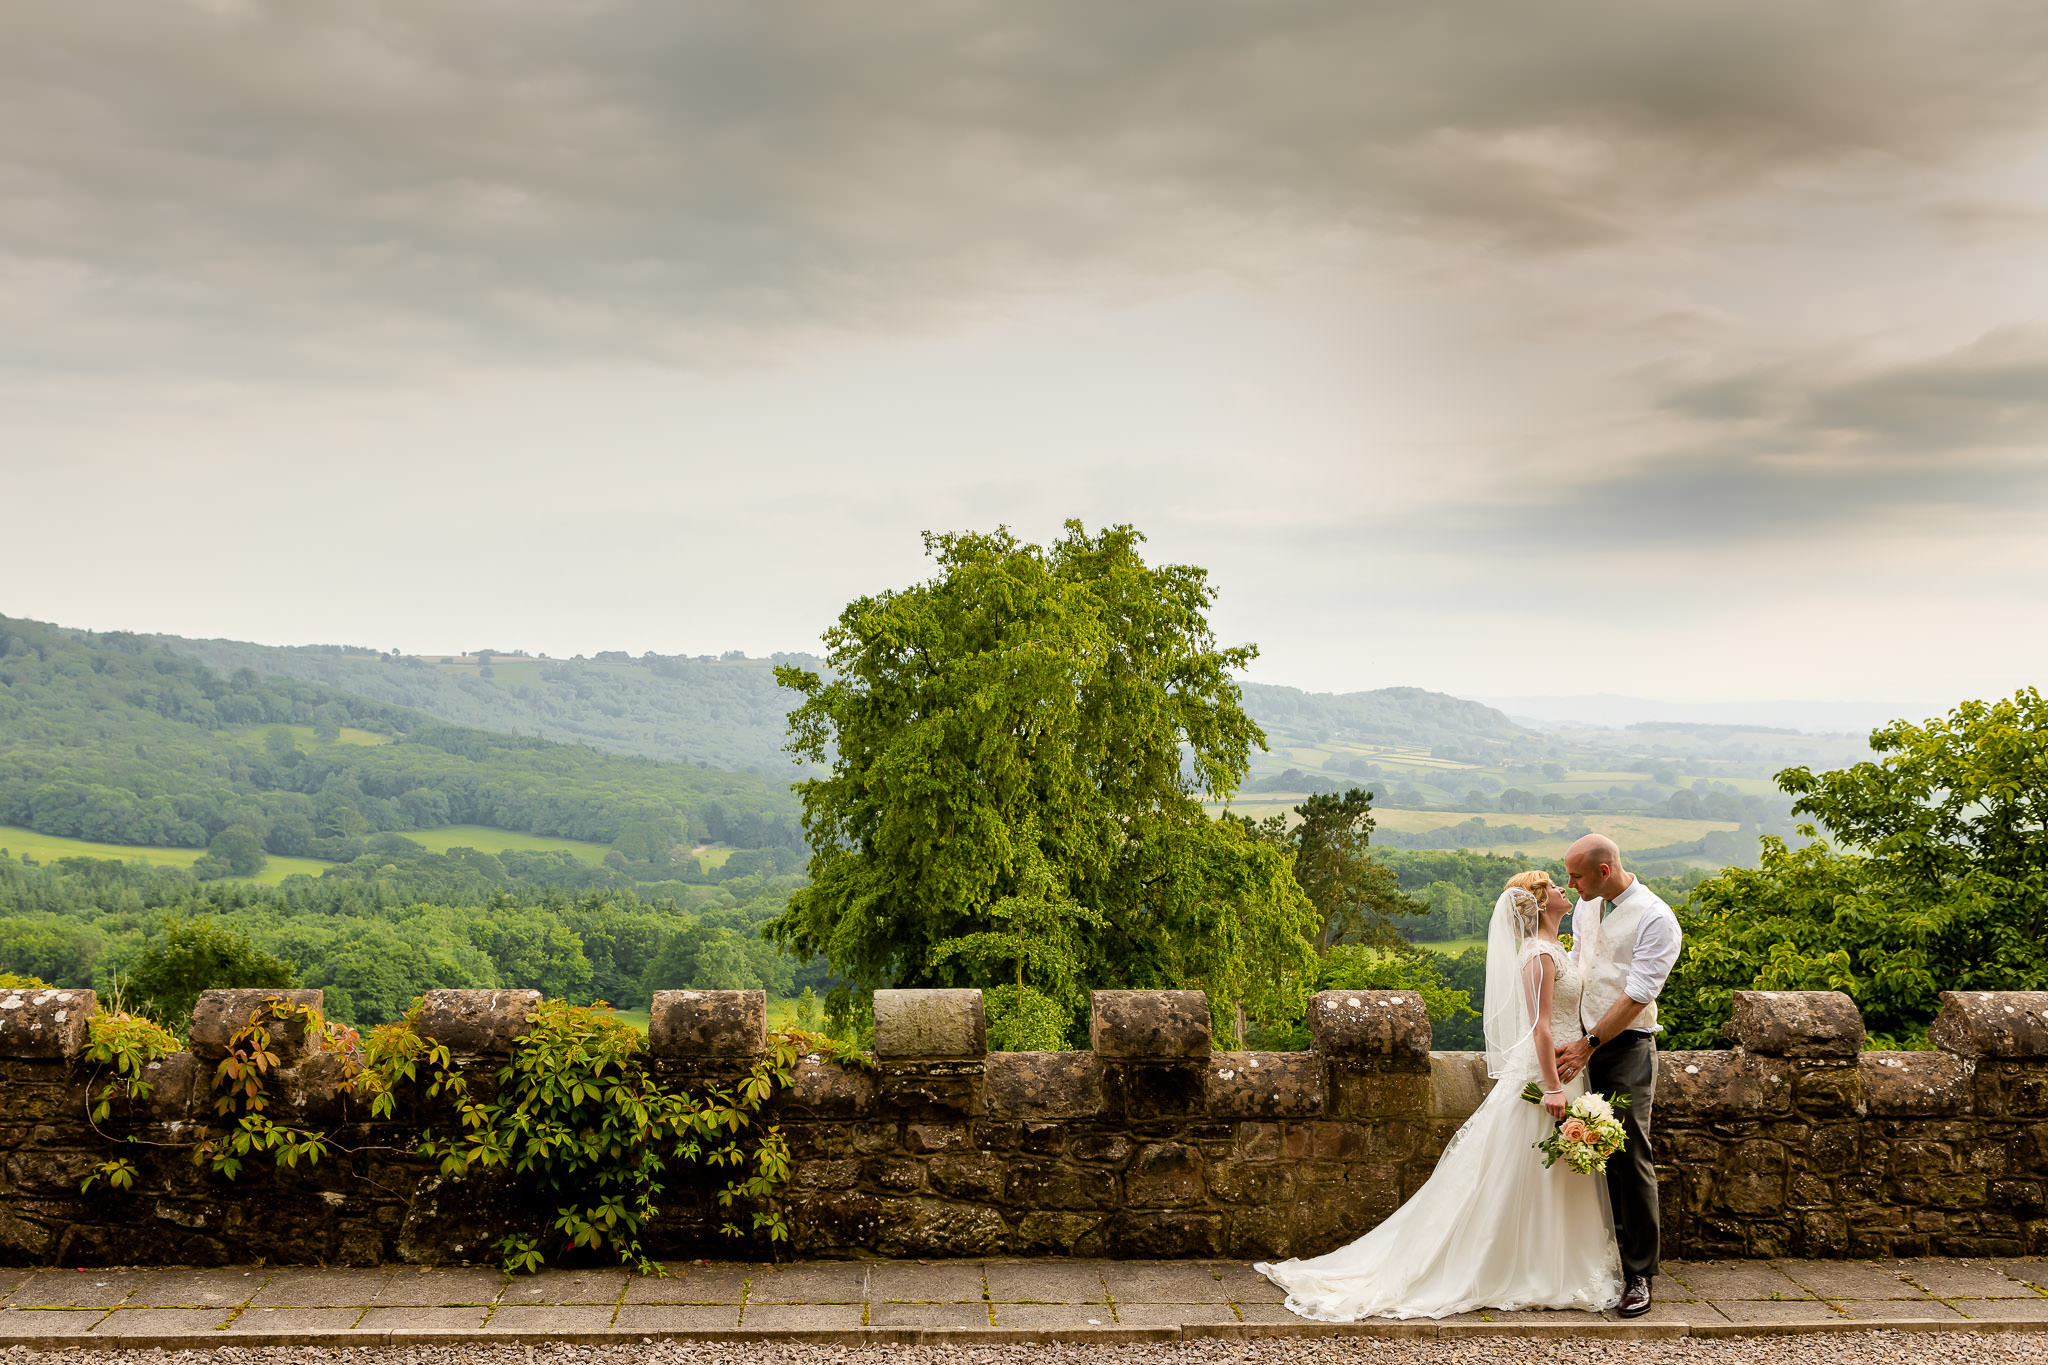 Art by Design - Caer Llan Wedding Photography - Bride and Groom Portrait